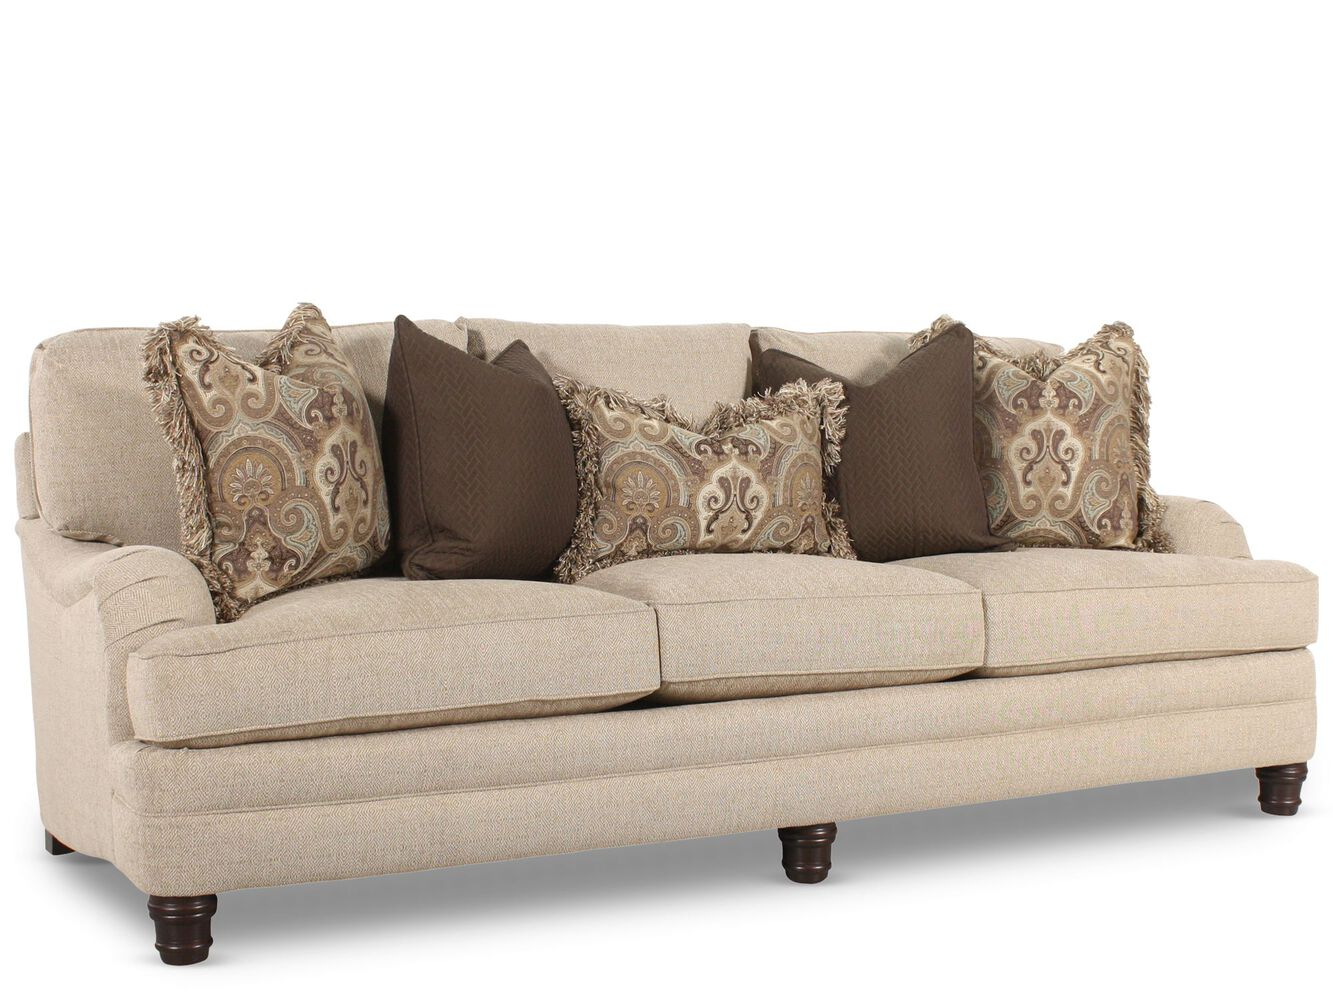 Bernhardt tarleton sofa mathis brothers furniture Bernhardt living room furniture